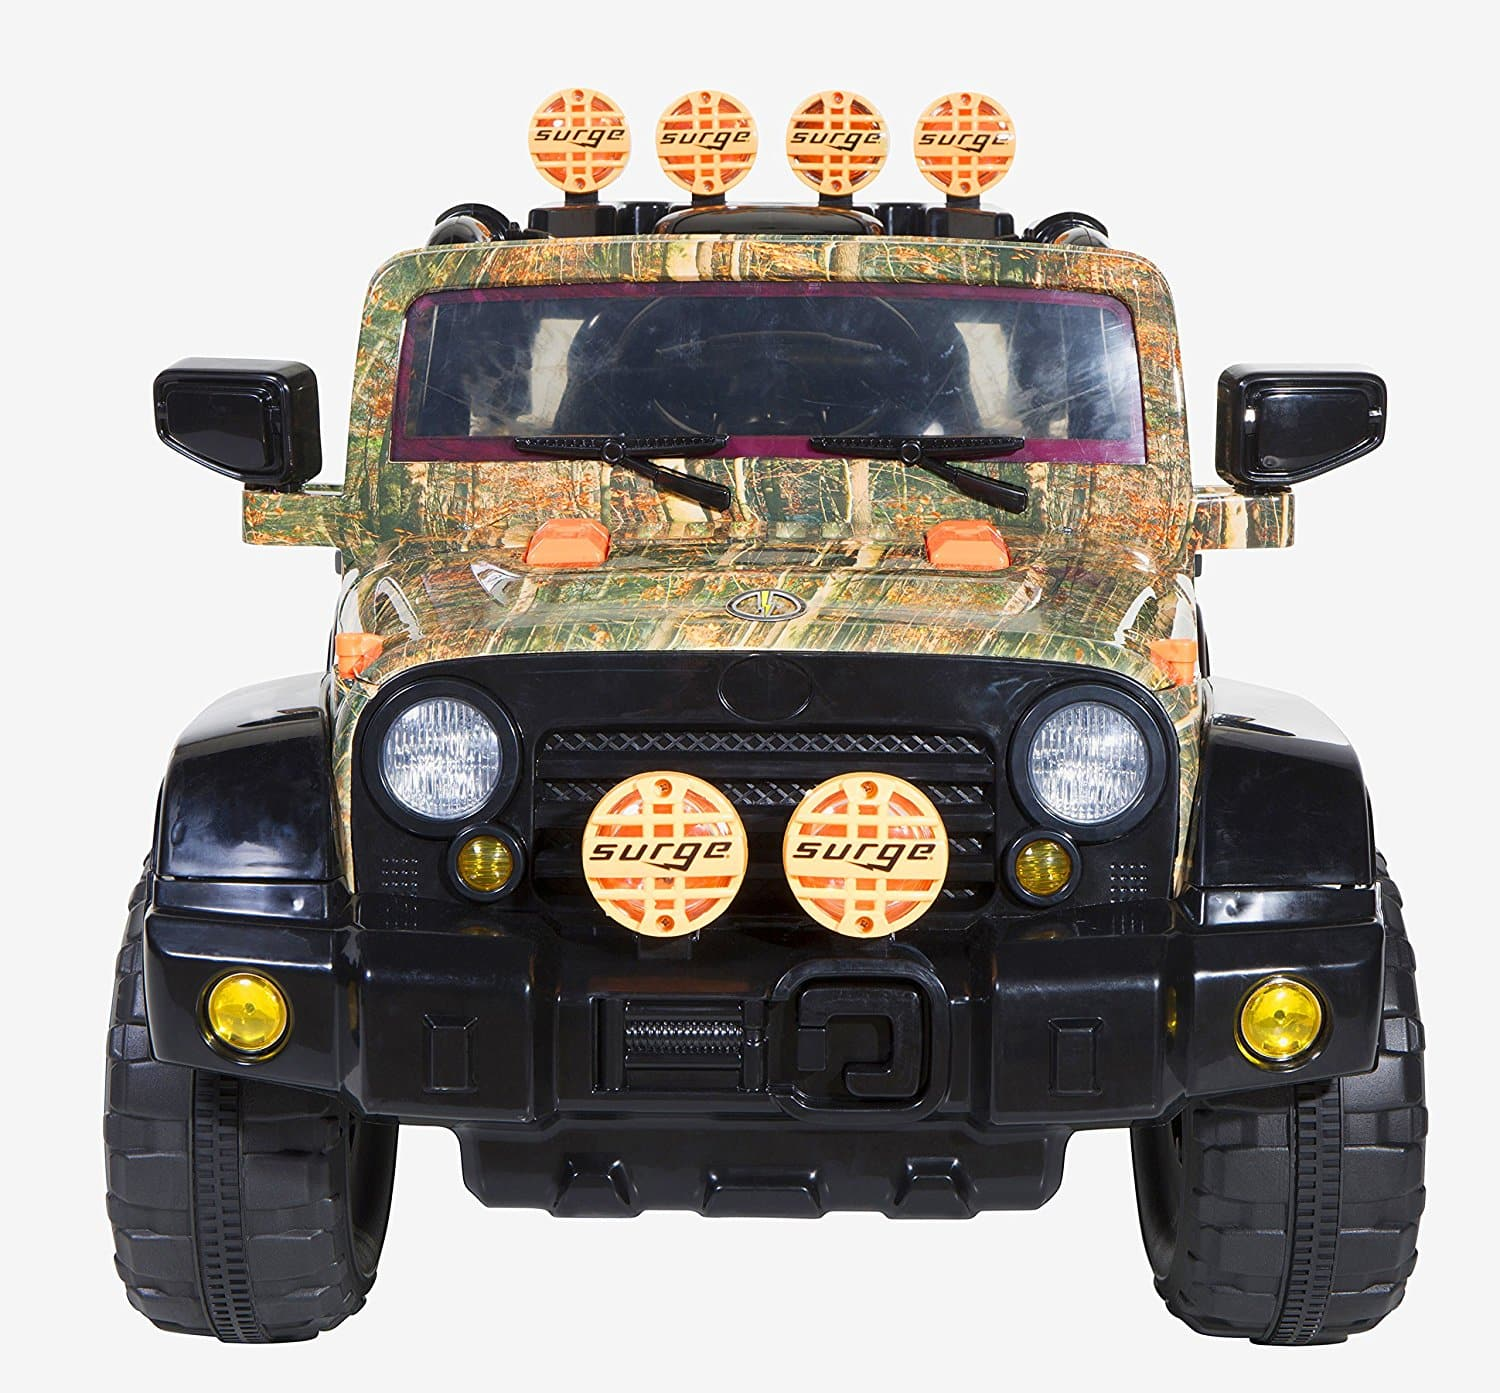 Dynacraft Surge Camo 6V 4X4 Battery Powered Ride-On $79 + Free Shipping